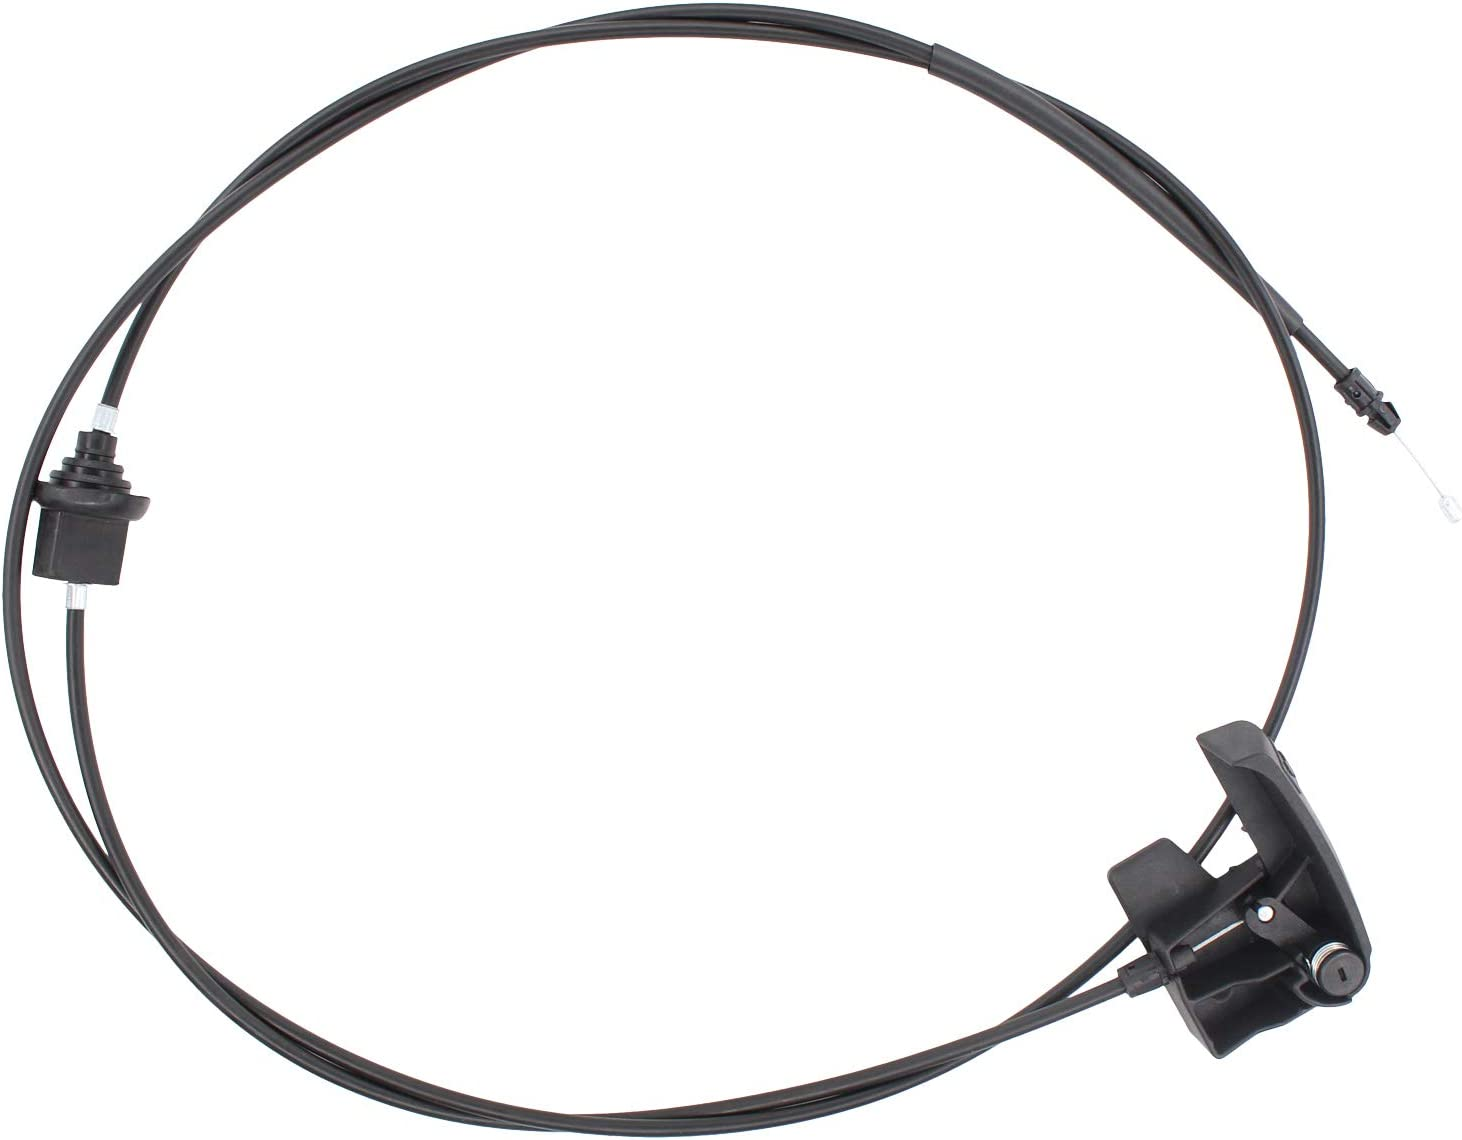 XtremeAmazing Front Hood Release Cable Compatible with GMC Chevy Cadillac Sierra Pickup Truck